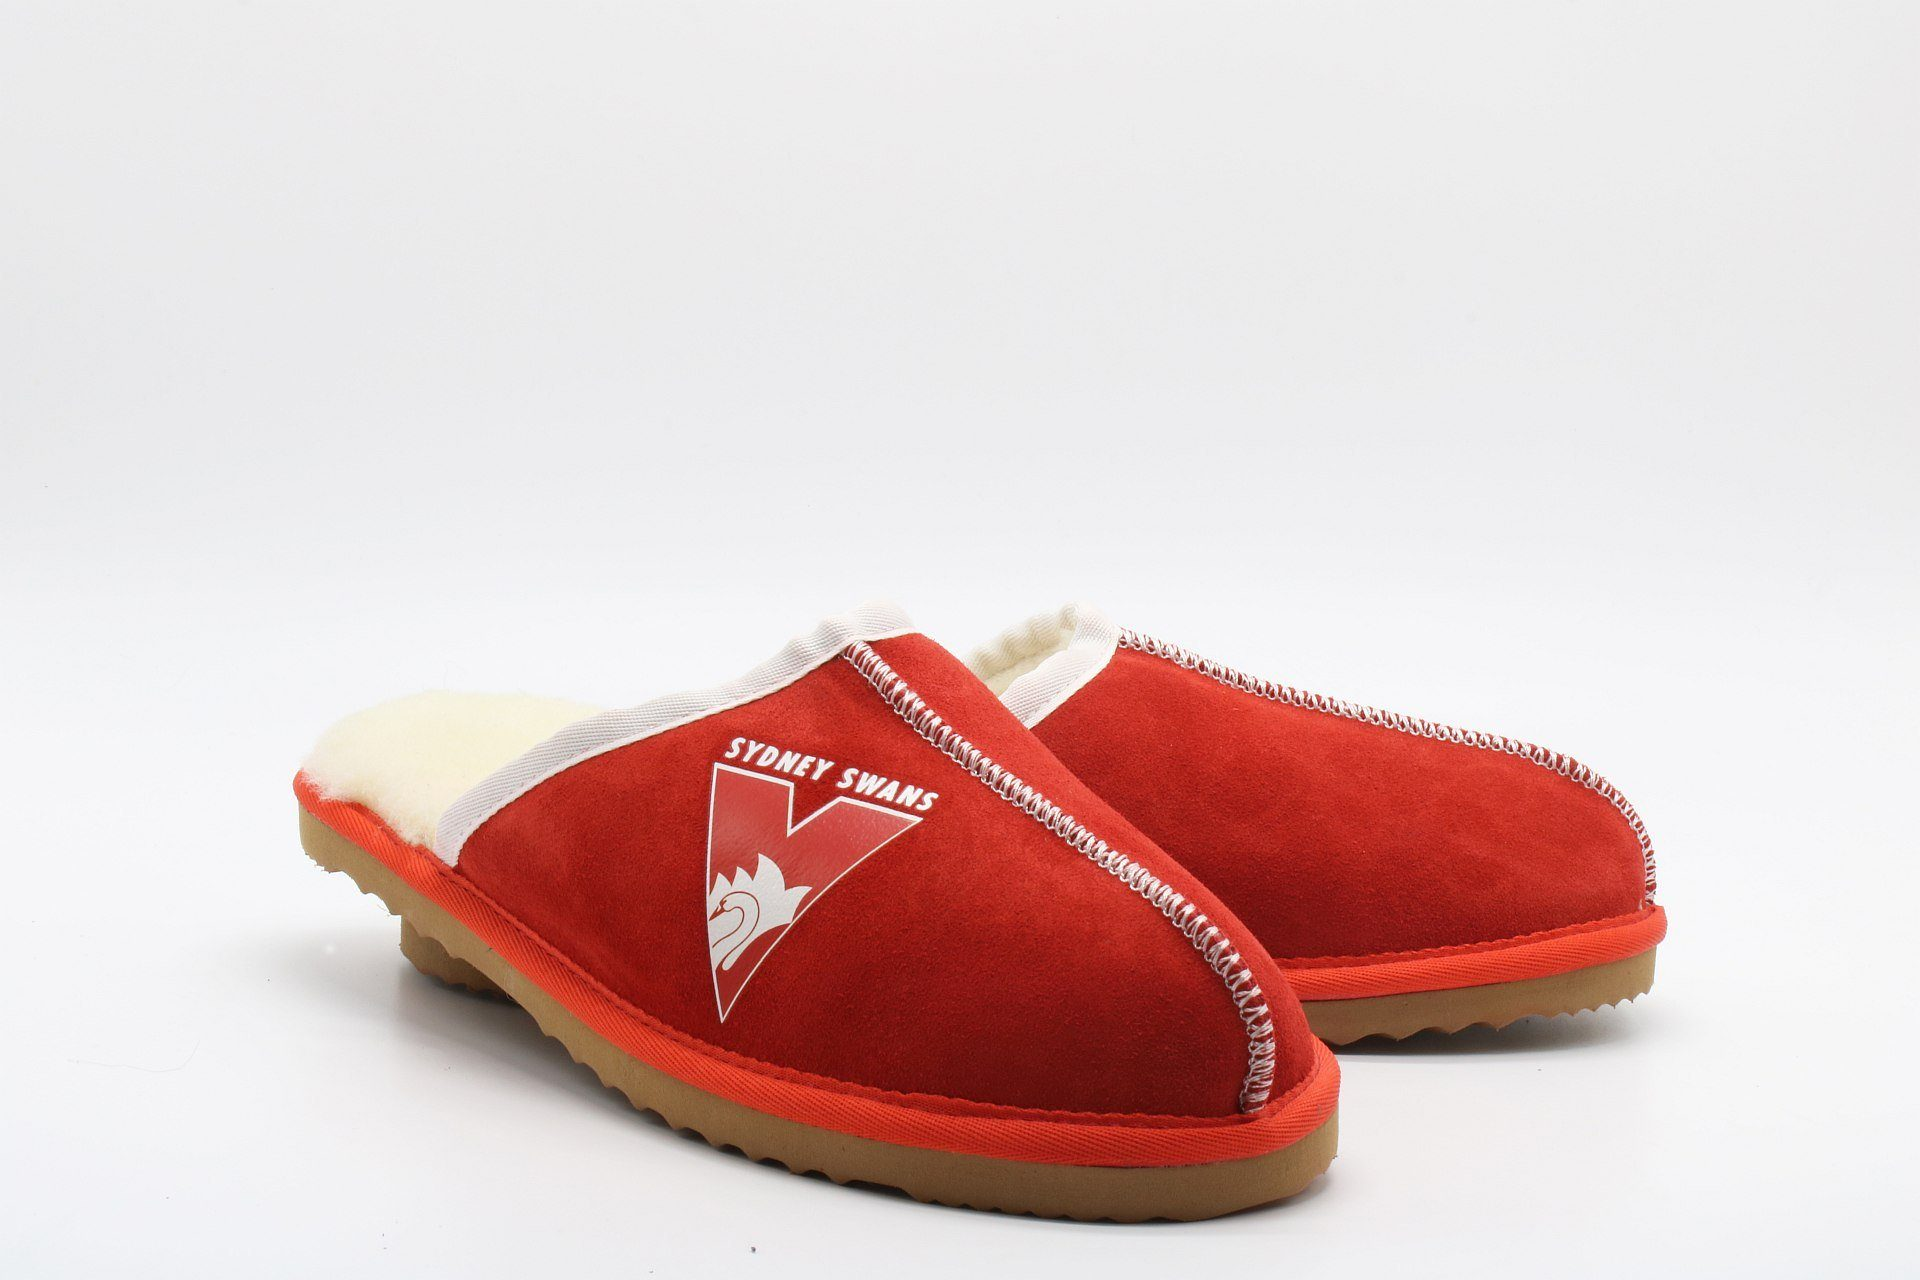 AFL Adults Slippers - Sydney Swans Footwear Team Uggs